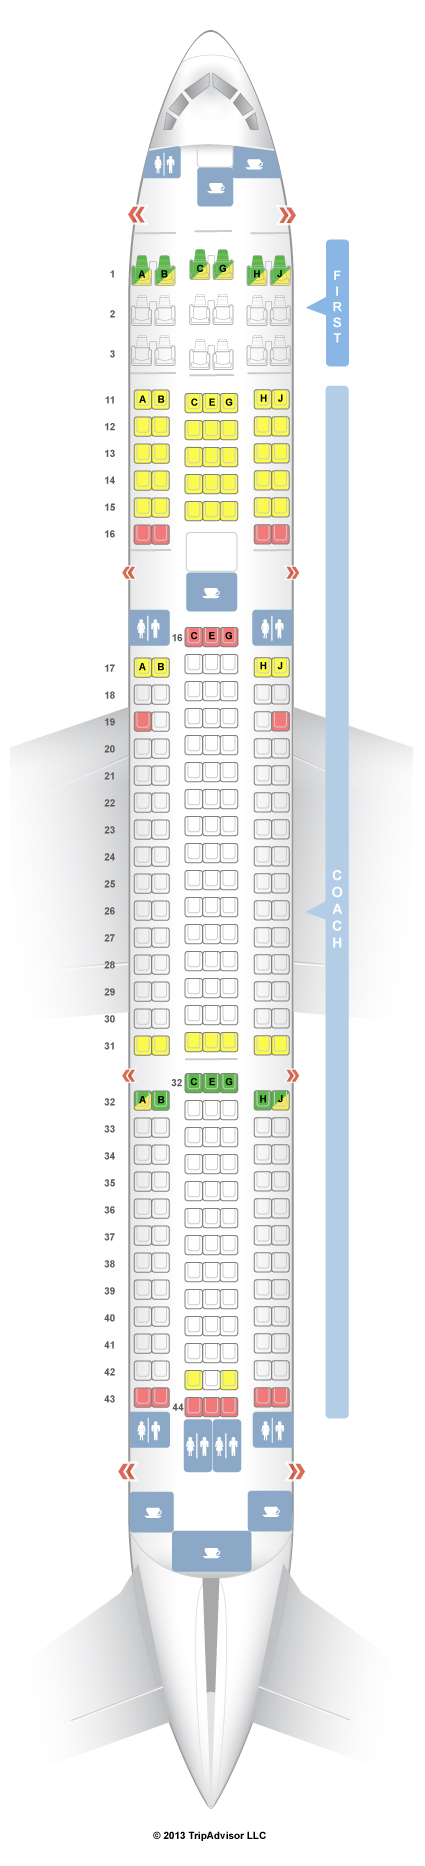 Seatguru seat map hawaiian airlines boeing 767 300er 763 v1